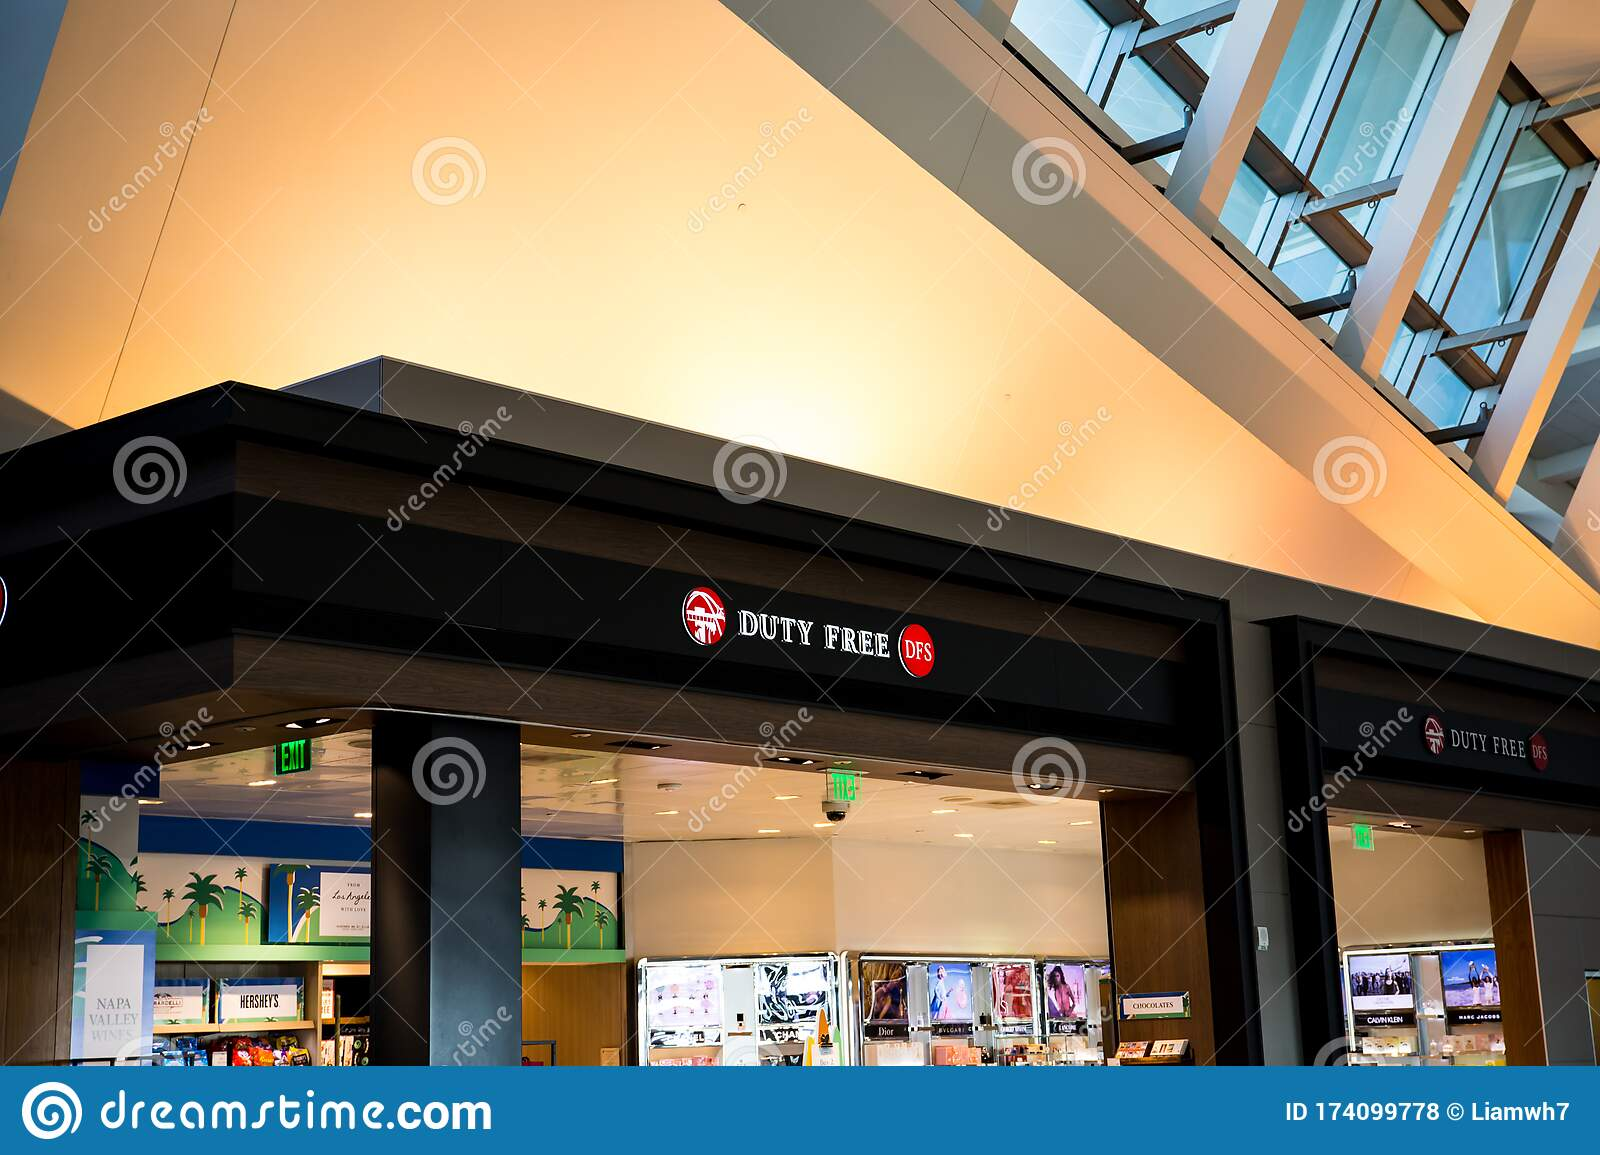 Los Angeles Usa 02 02 2020 Los Angeles International Airport Inside Duty Free Shopping No Tax Editorial Stock Photo Image Of Inside Gate 174099778